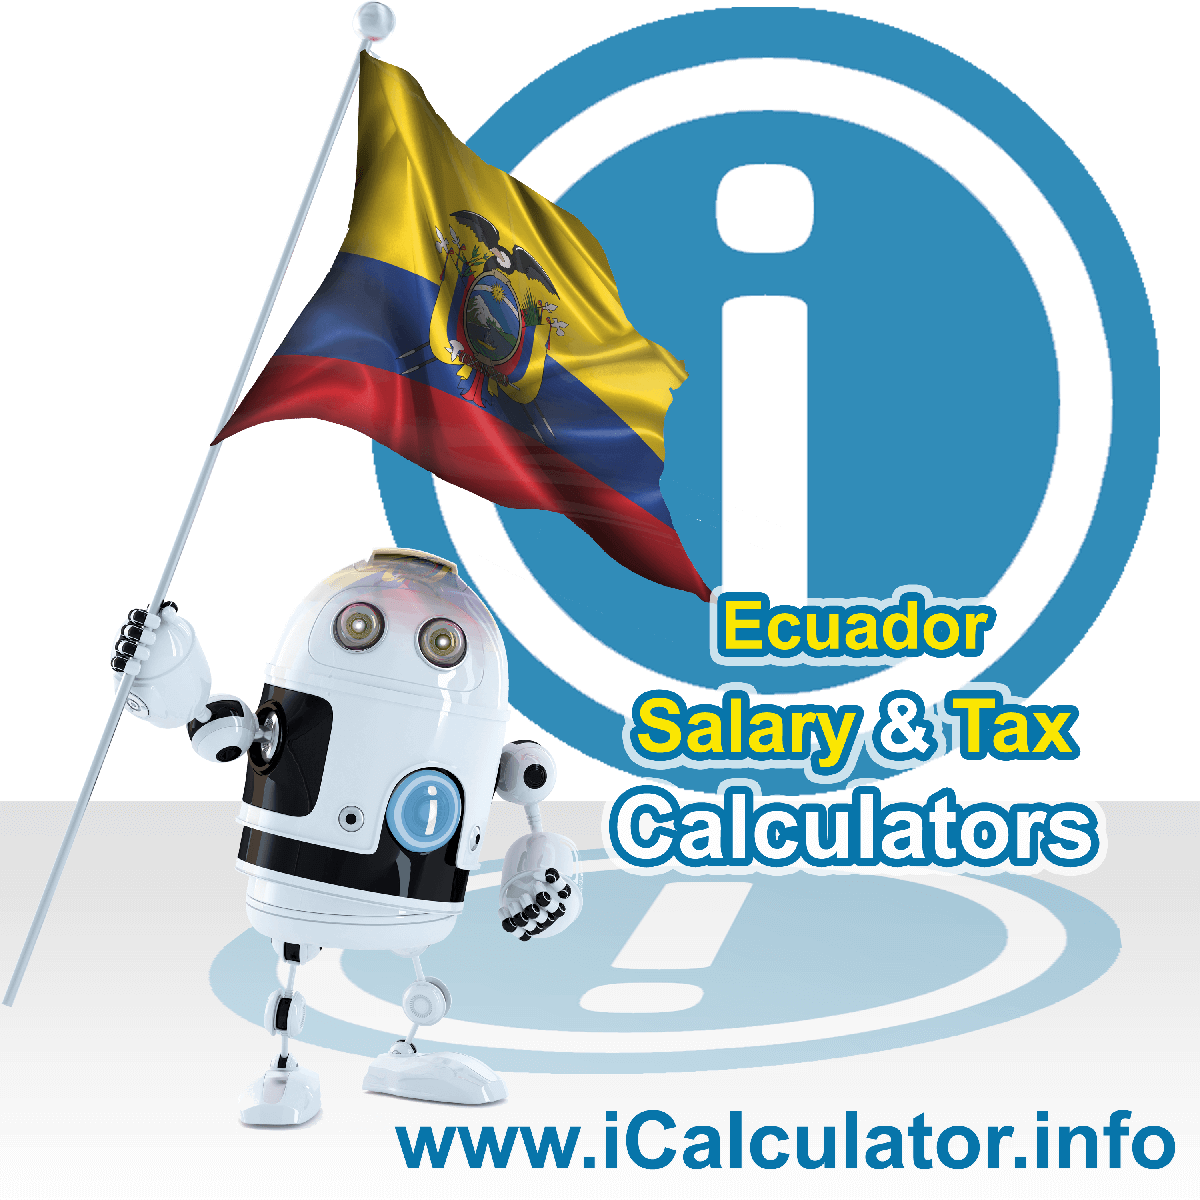 Ecuador Tax Calculator. This image shows the Ecuador flag and information relating to the tax formula for the Ecuador Salary Calculator